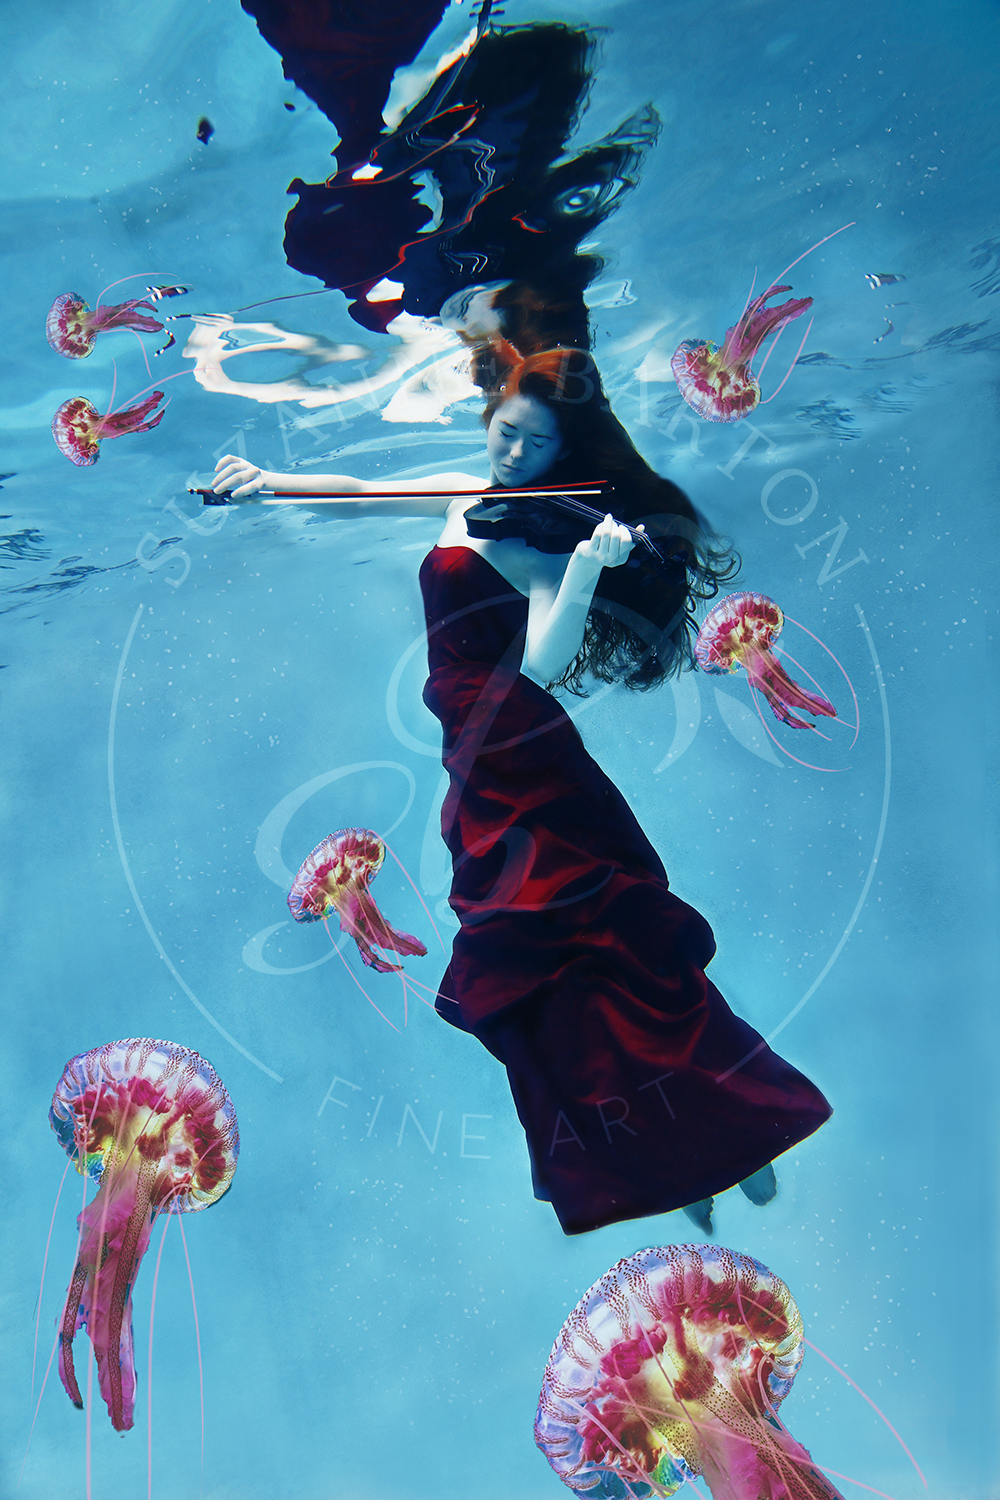 Jammin' with Jellies - Suzanne Barton - Limited Edition